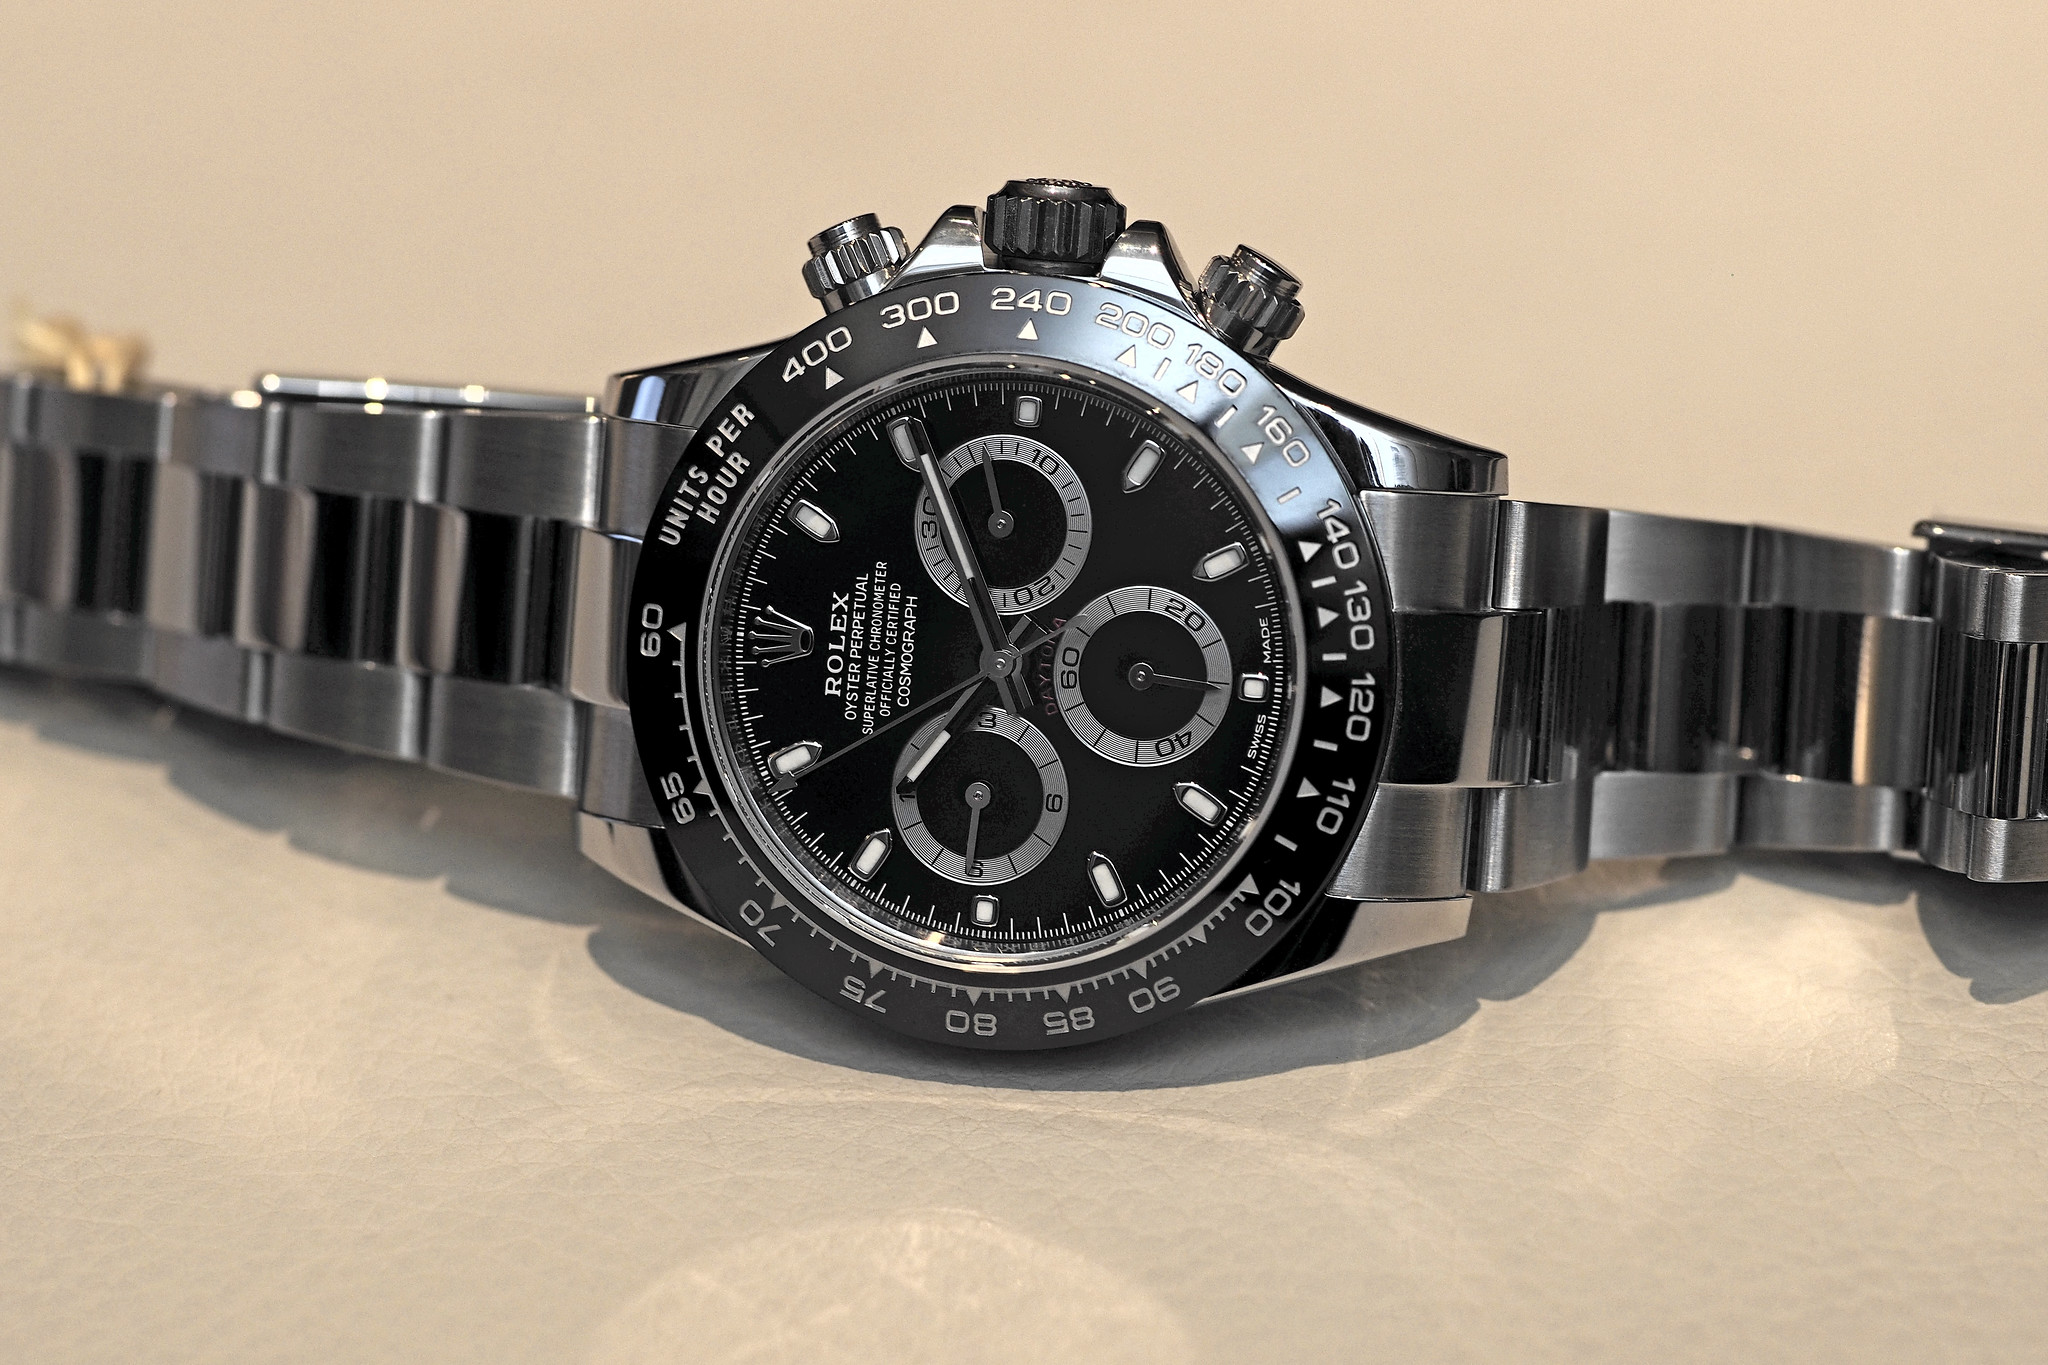 Rolex Daytona Ceramic with black dial